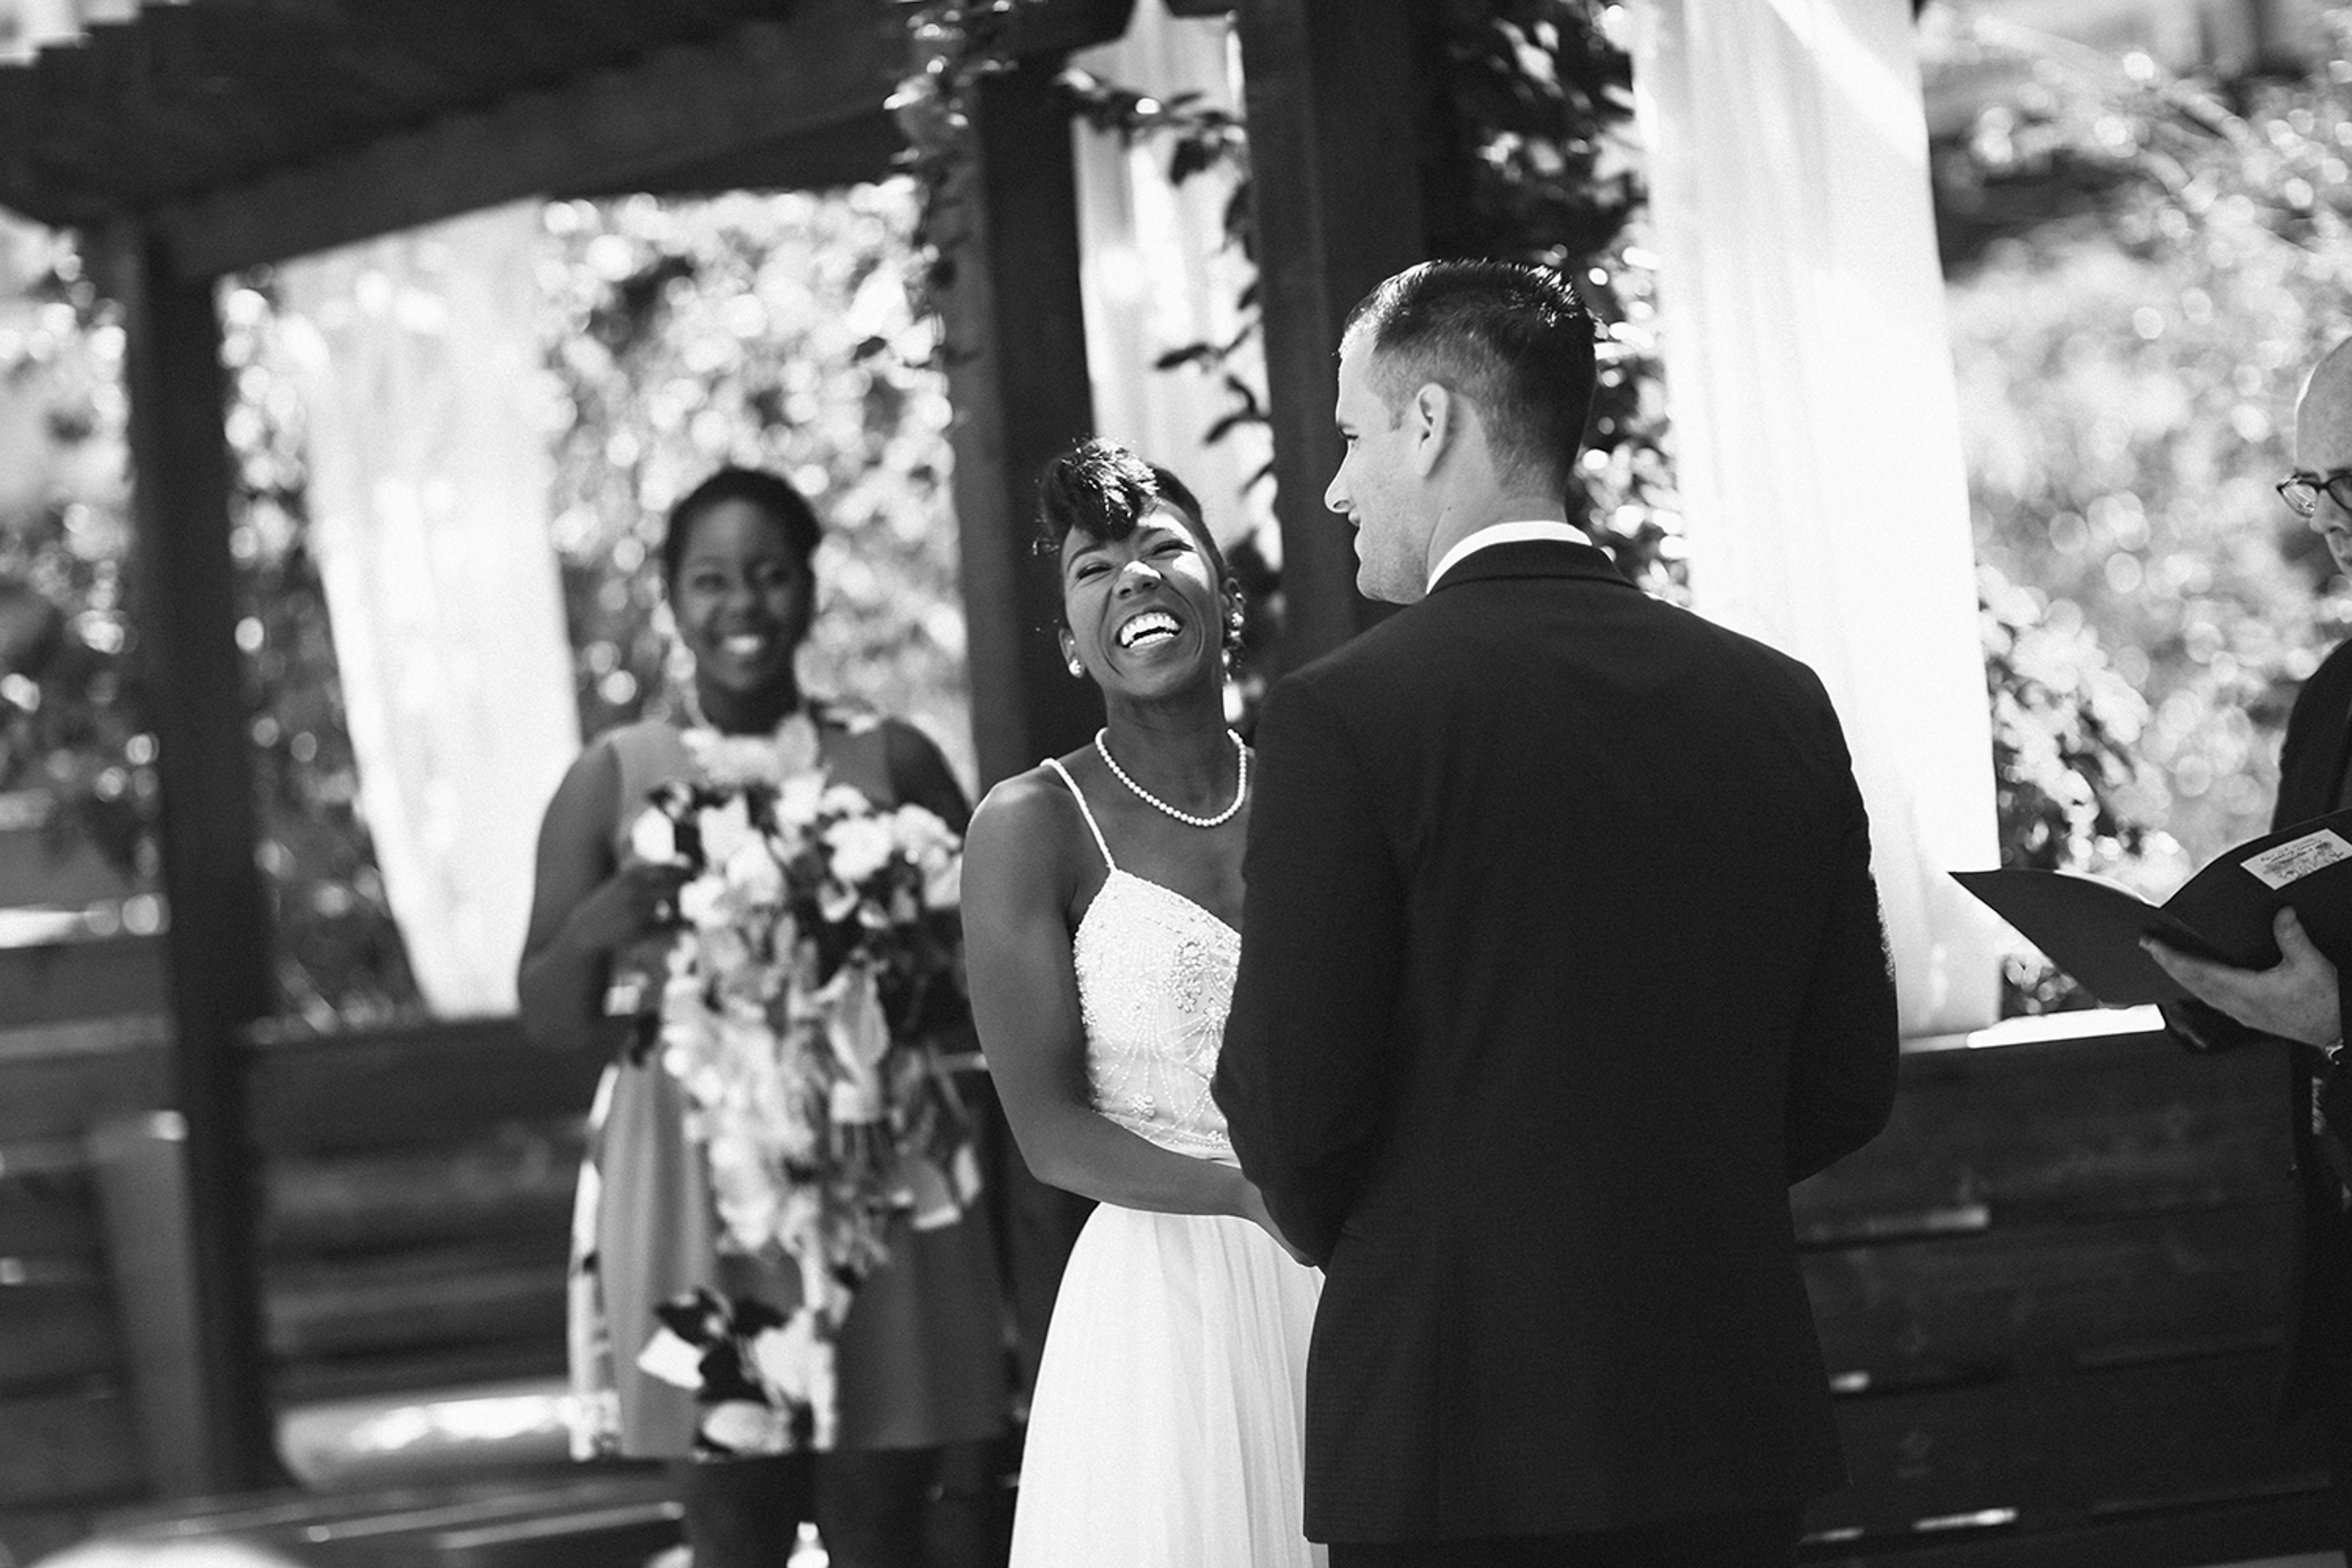 chicago.wedding.urban.intimate.zed451.lake.milton olive park-49.jpg